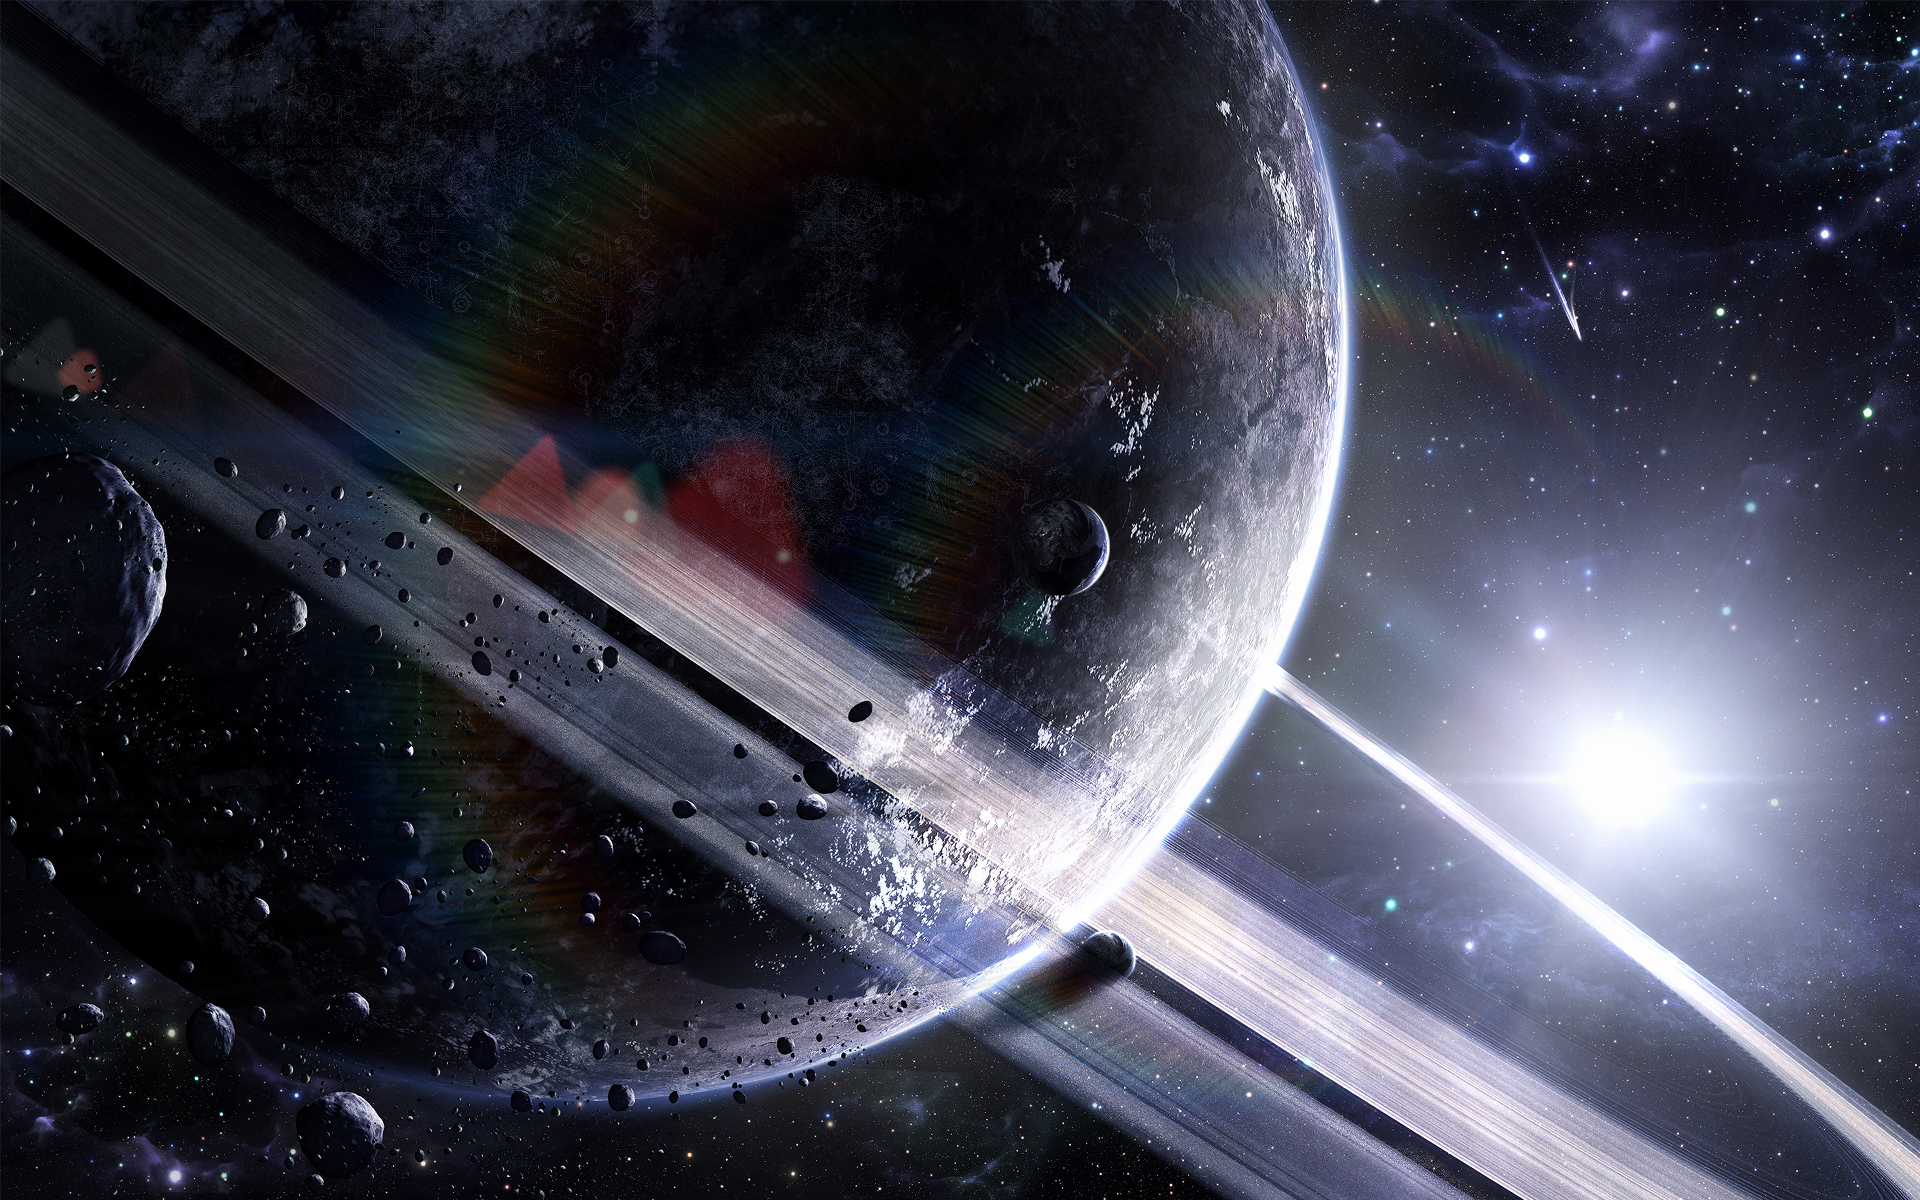 space wallpaper collection wallpapers largest 1920x1200 1920x1200